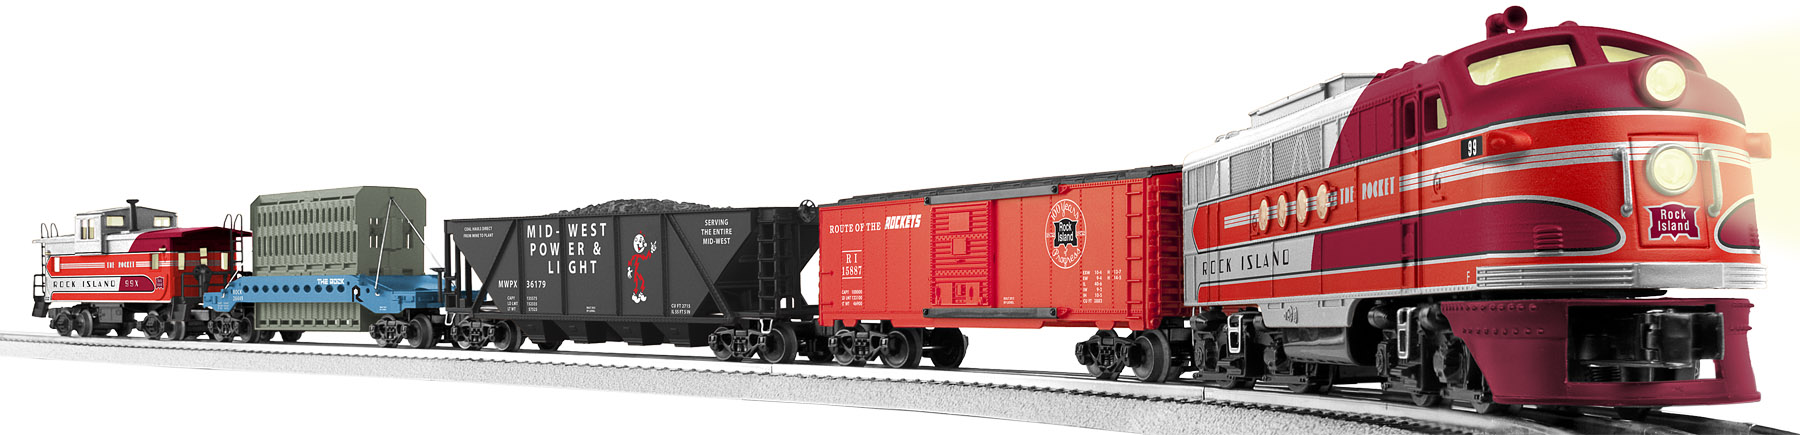 6-30179 ROCK ISLAND ROCKET FREIGHT SET W/ RAILSOUNDS RTR